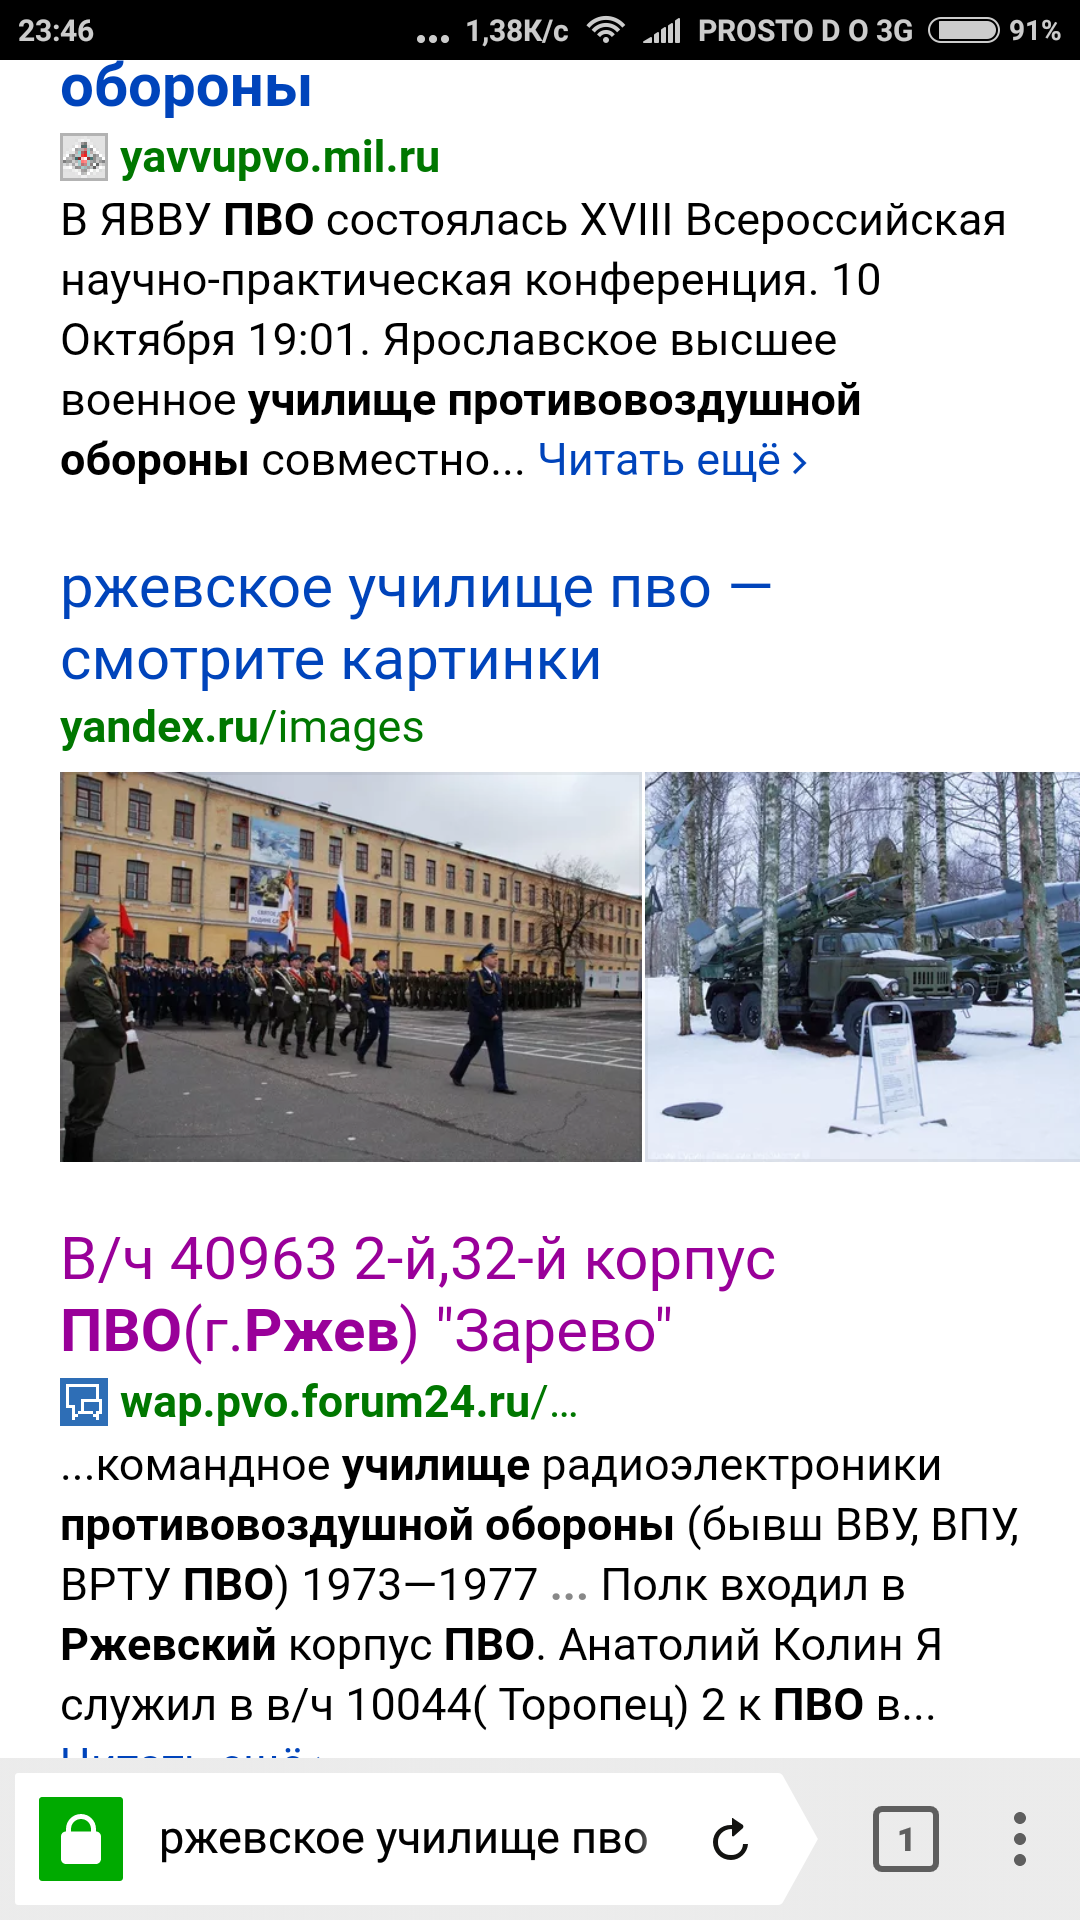 Screenshot_2017-11-02-23-46-41-329_com.yandex.browser.png